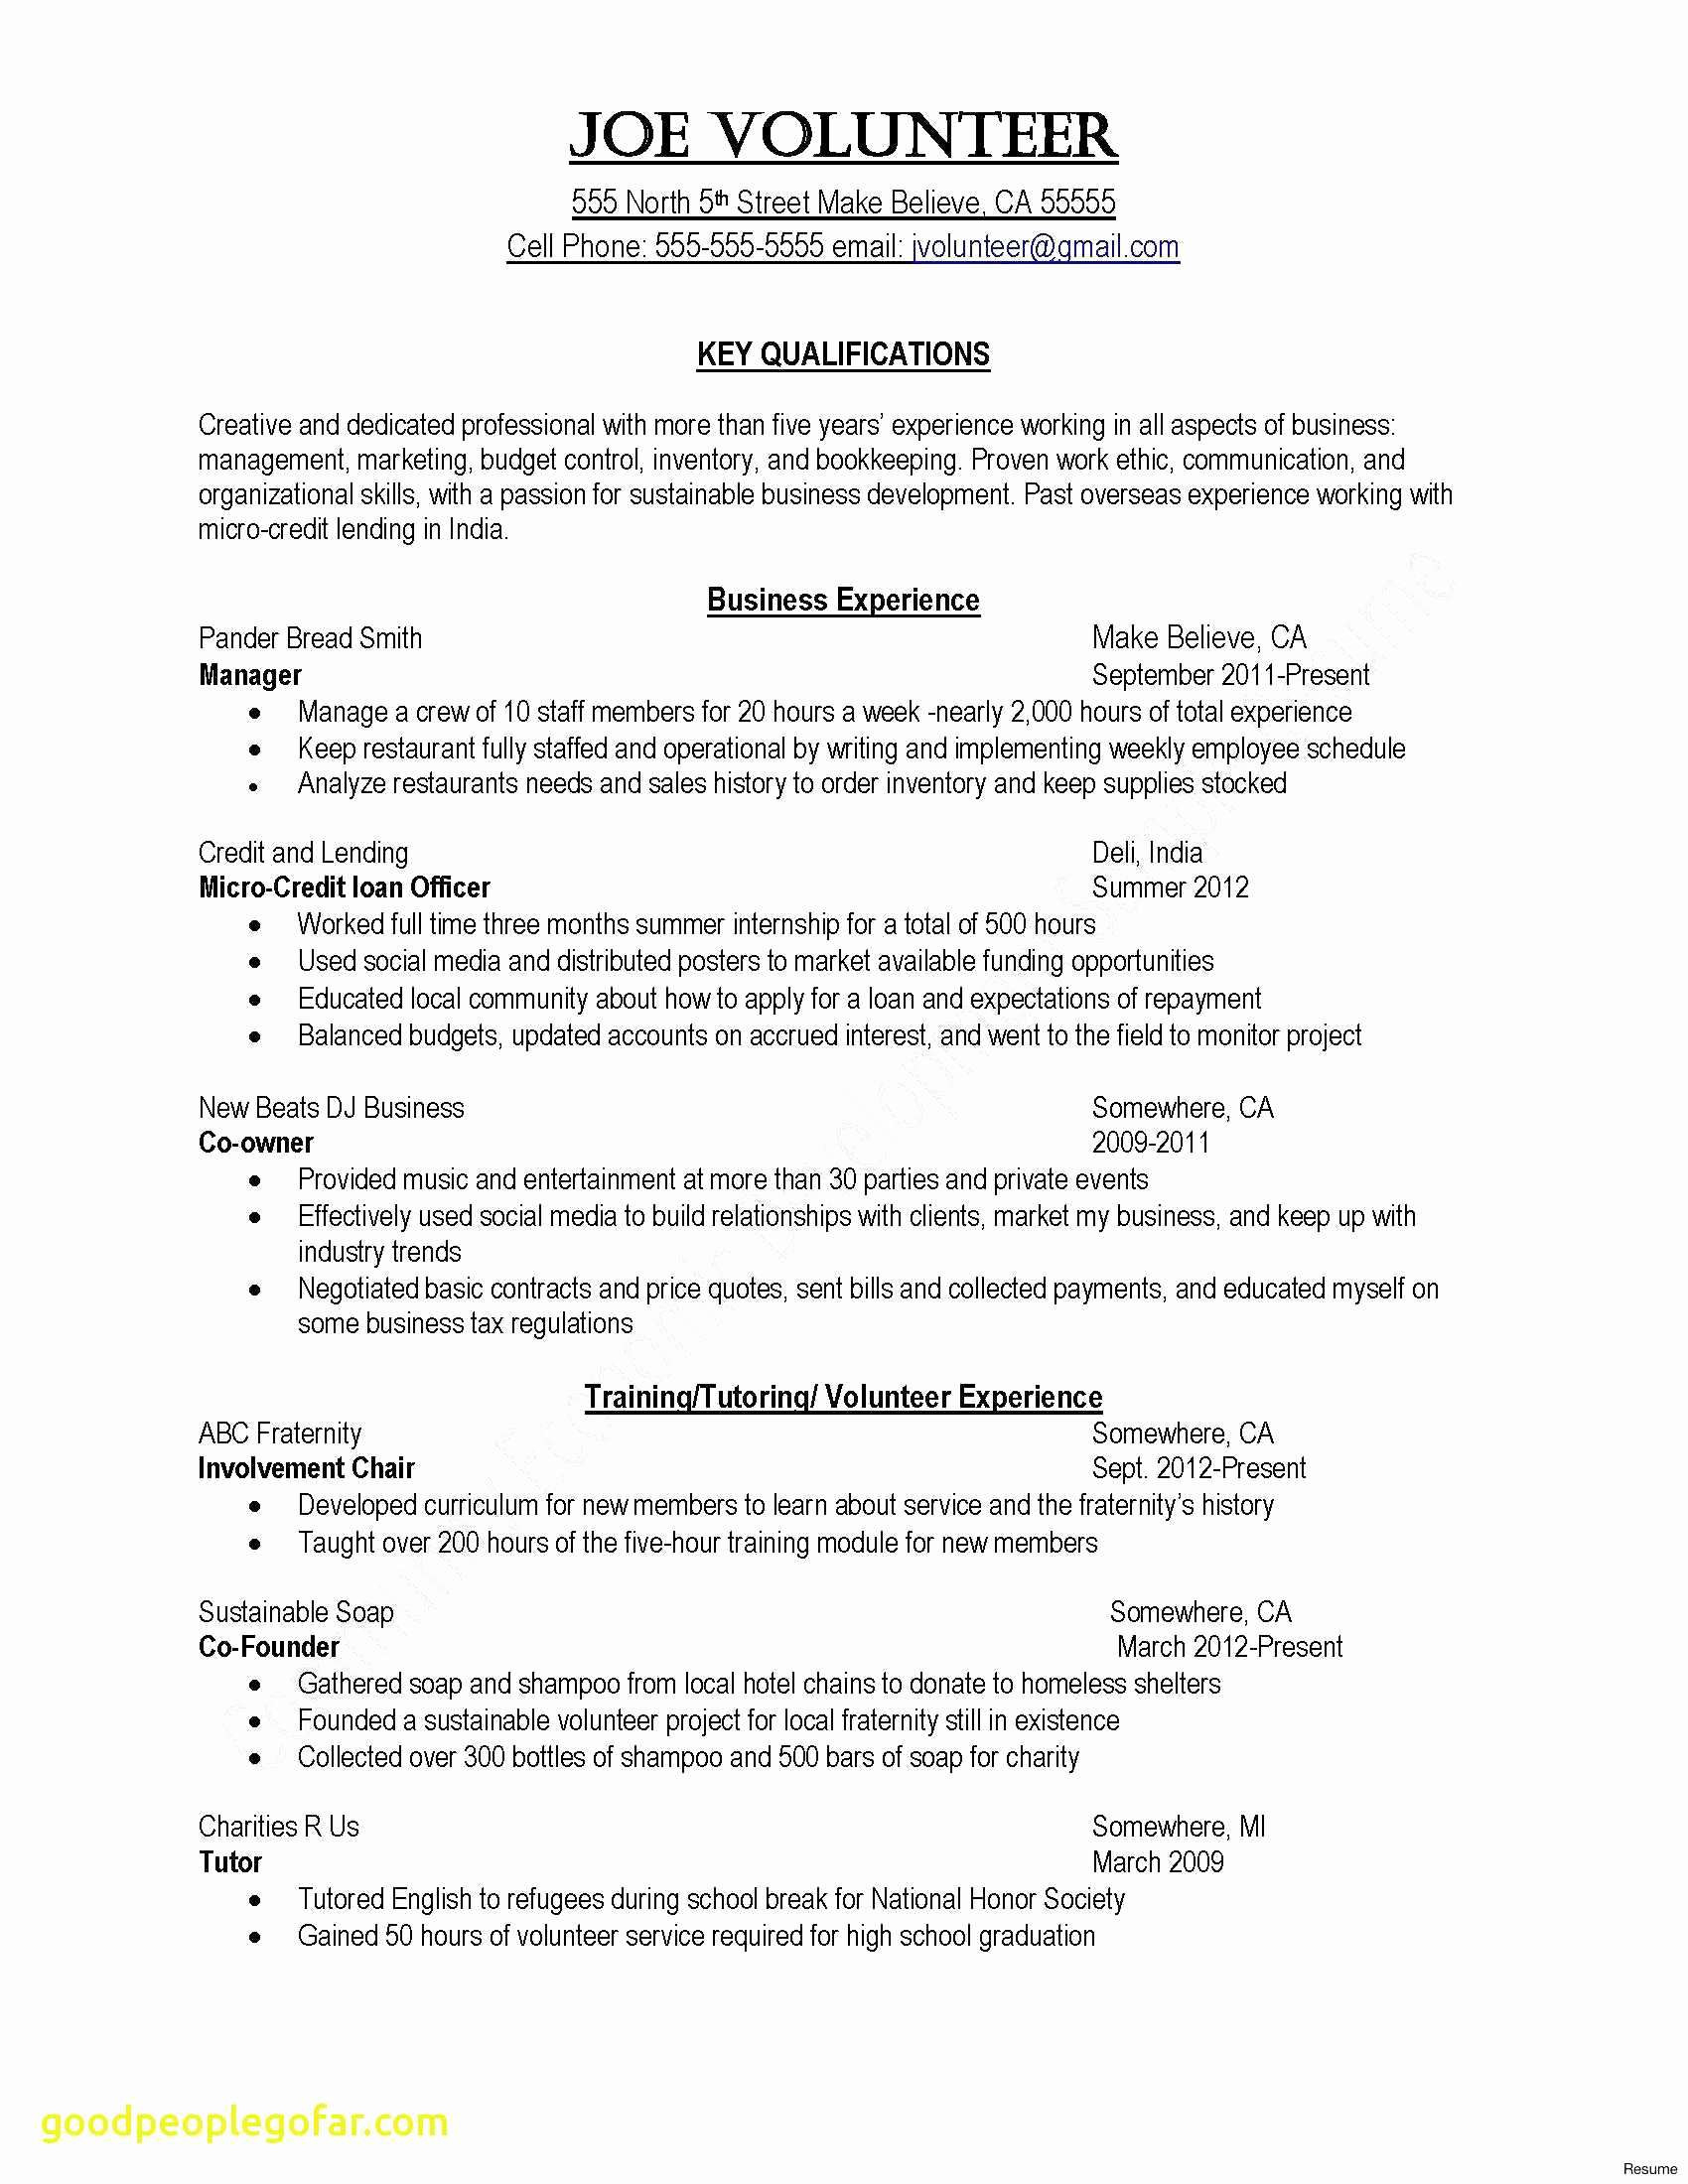 Resume Templates Latex - Latex Resume Templates Professional 2018 Resume Templates Latex